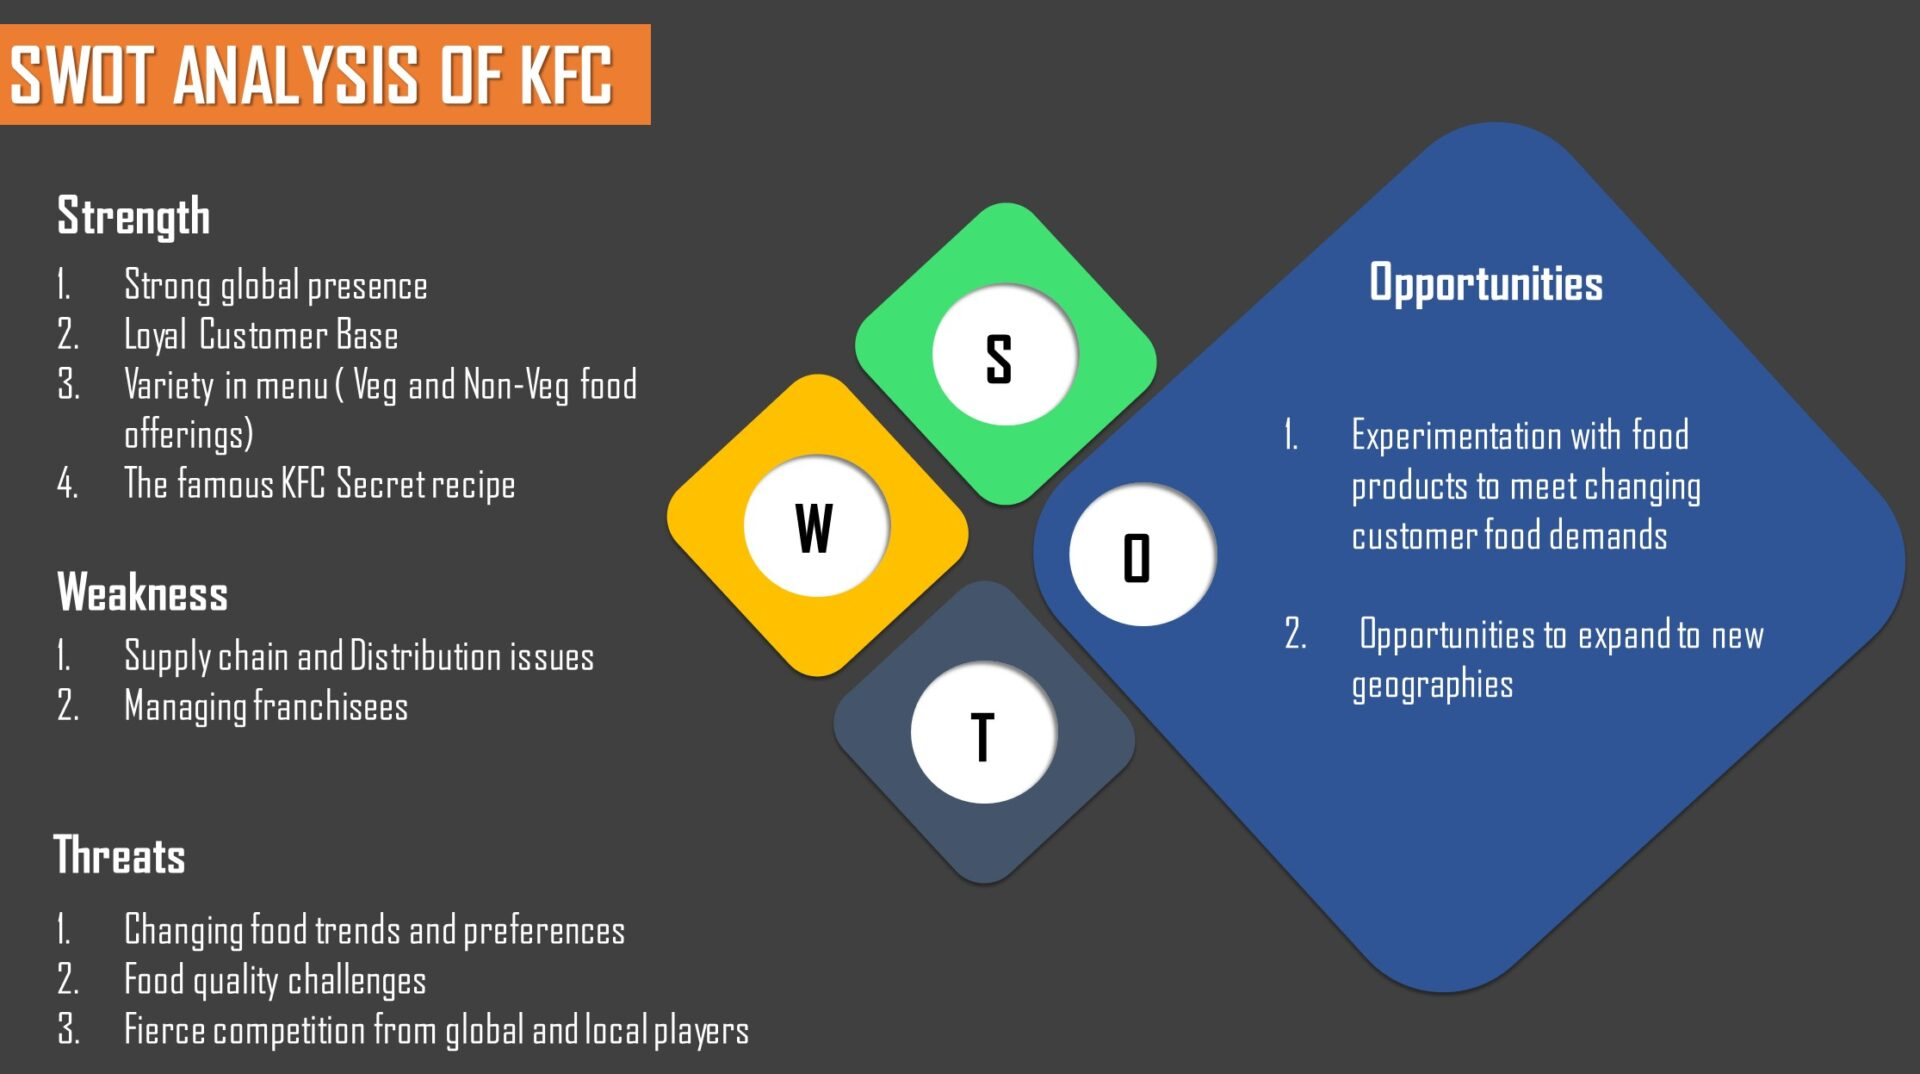 SWOT Analysis of KFC | KFC's SWOT Analysis